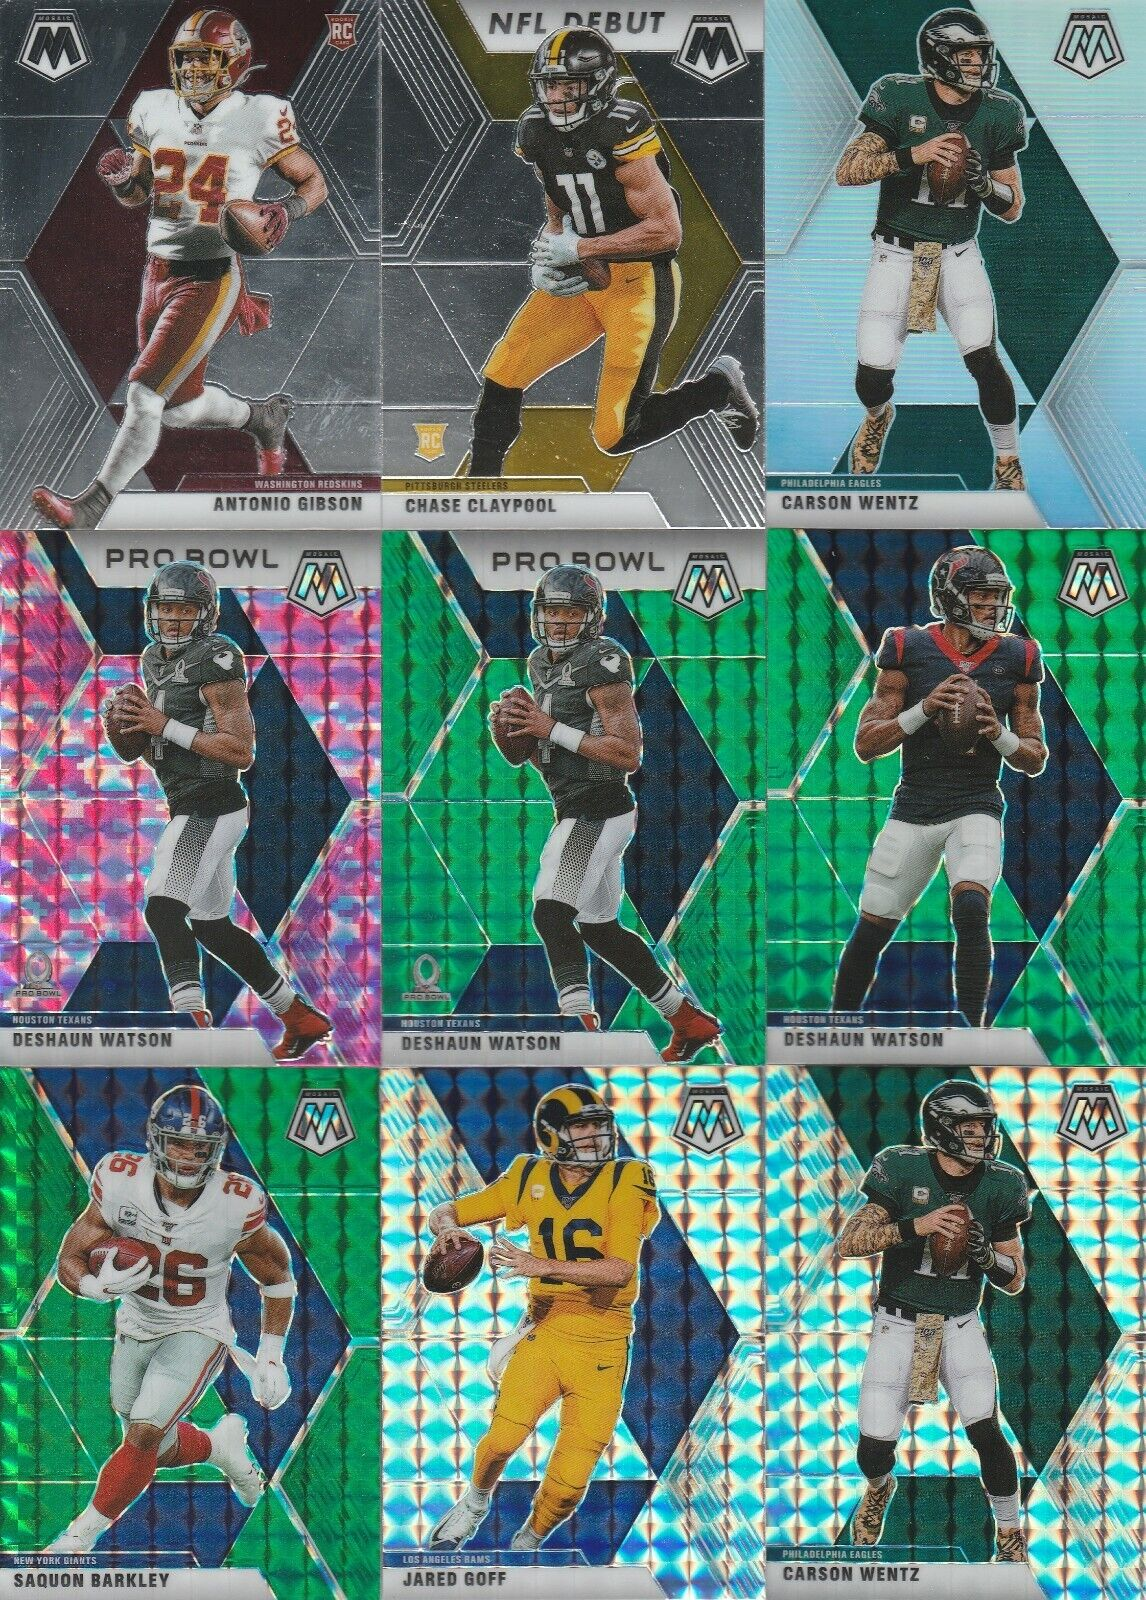 2020 Mosaic Football Card Lot Of 60 Cards - $25.00